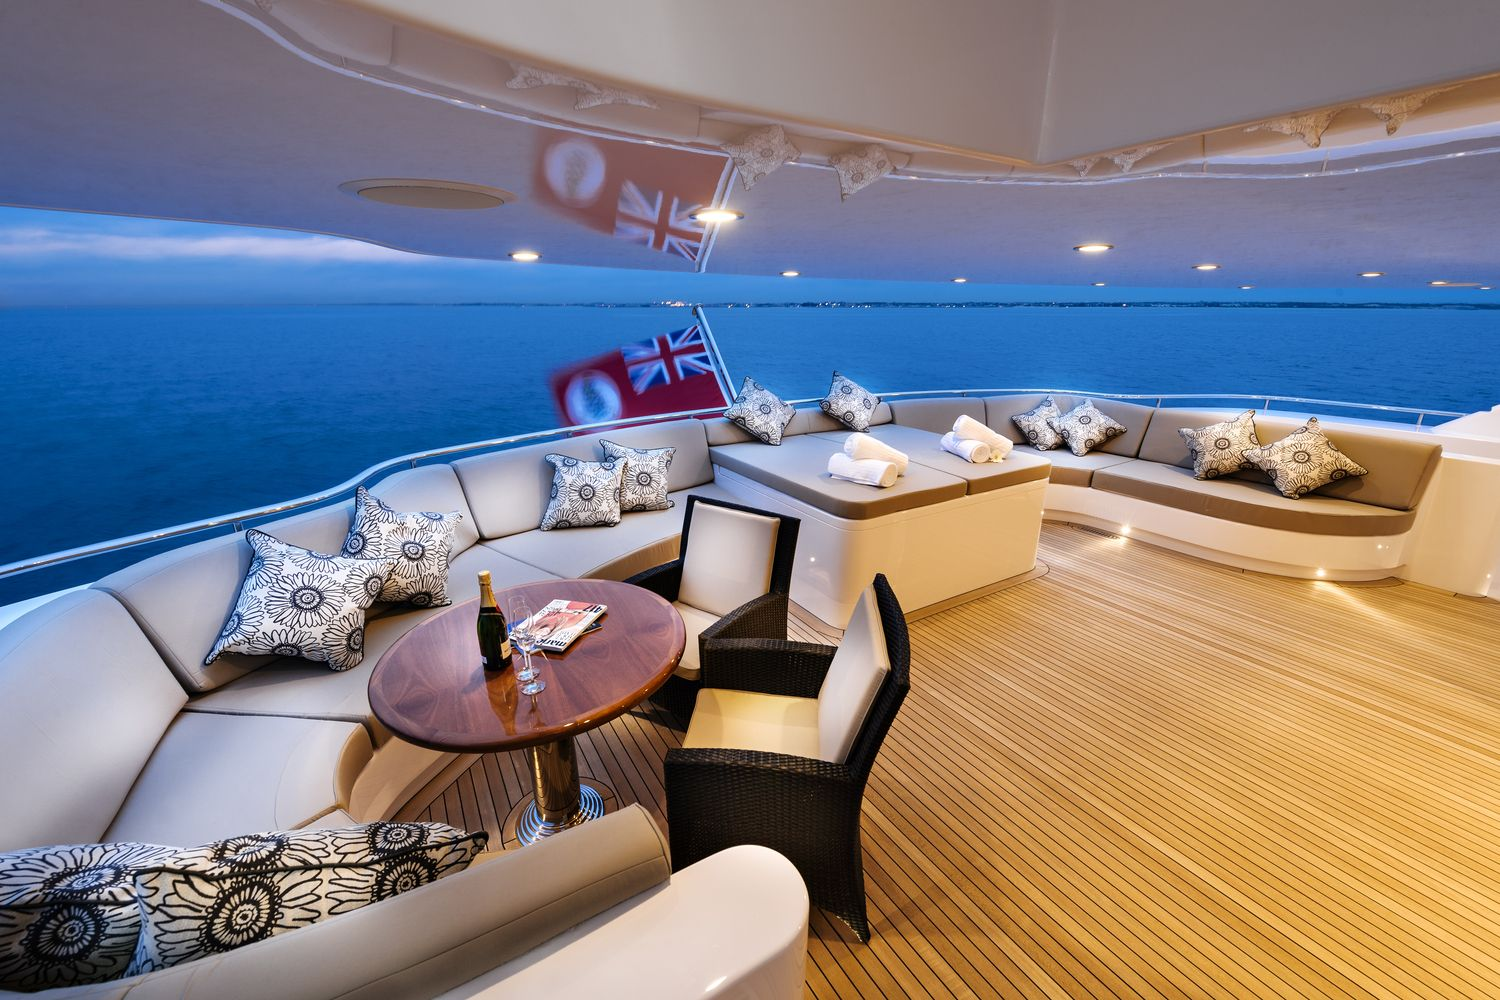 Luxury superyacht keyla interior by hot lab luxury yacht charter - The Outdoor Terrace And Spa Off The Master Bedroom Onboard The Wonderful Private Superyacht Zenith